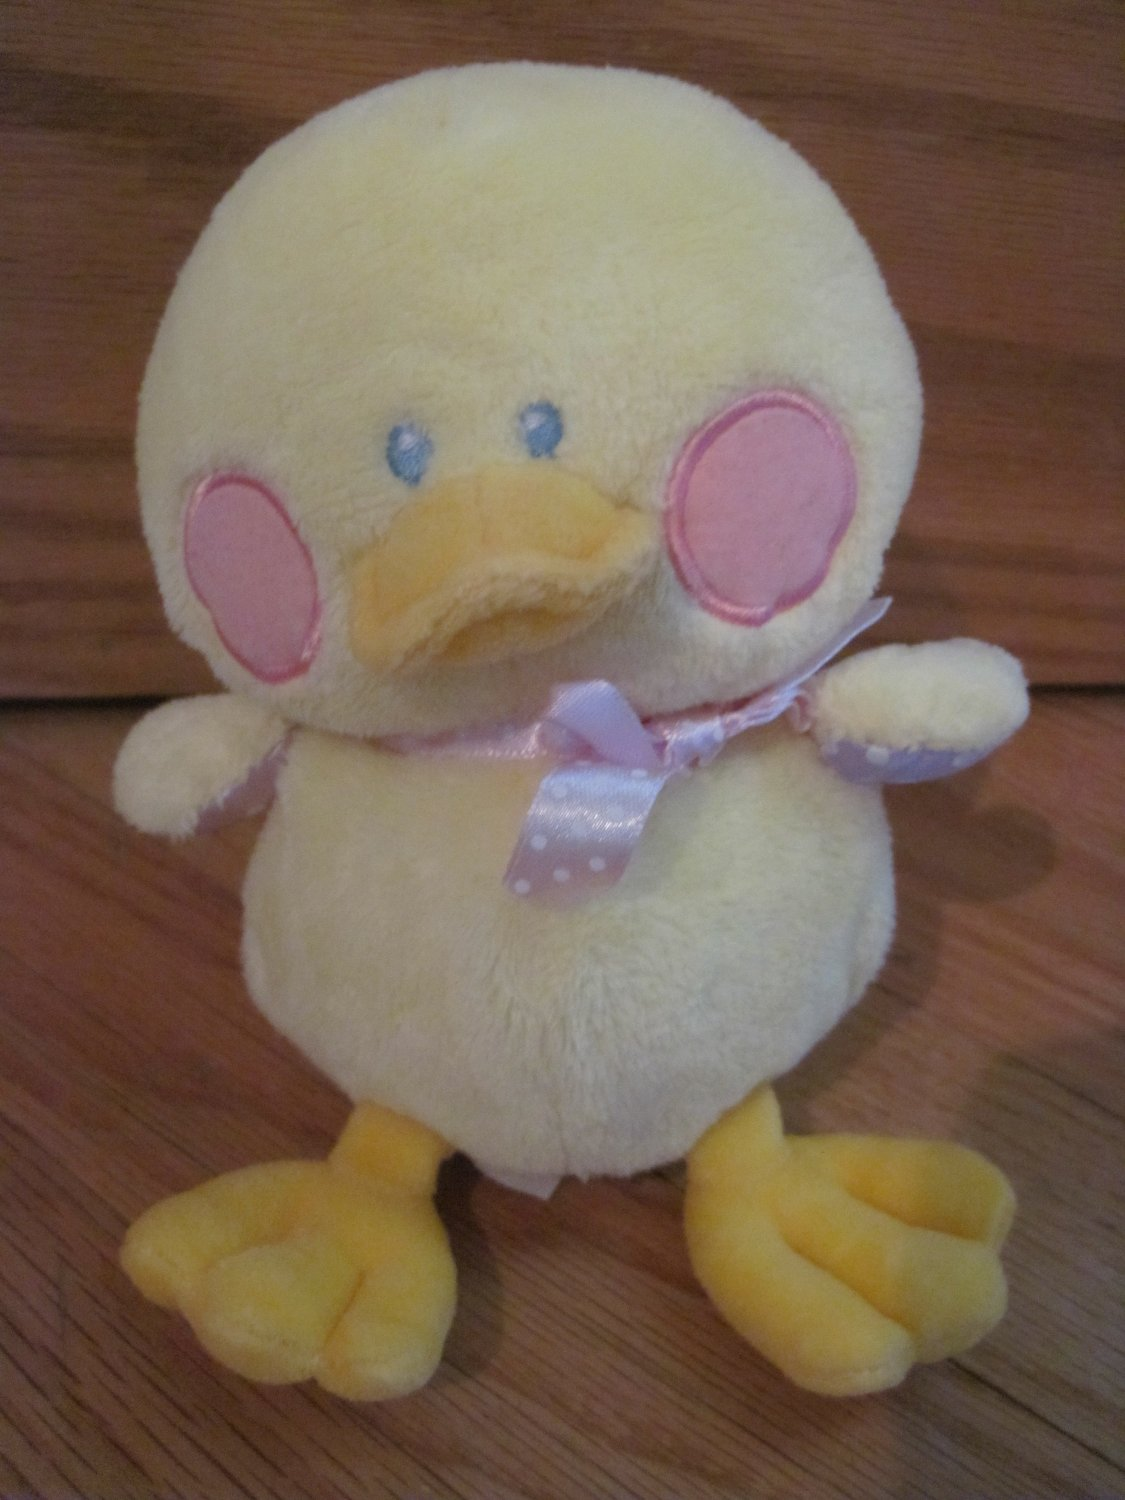 Baby Ganz Plush Yellow Duck Rattle Named Delia Round Rosy Circle Cheeks BG894